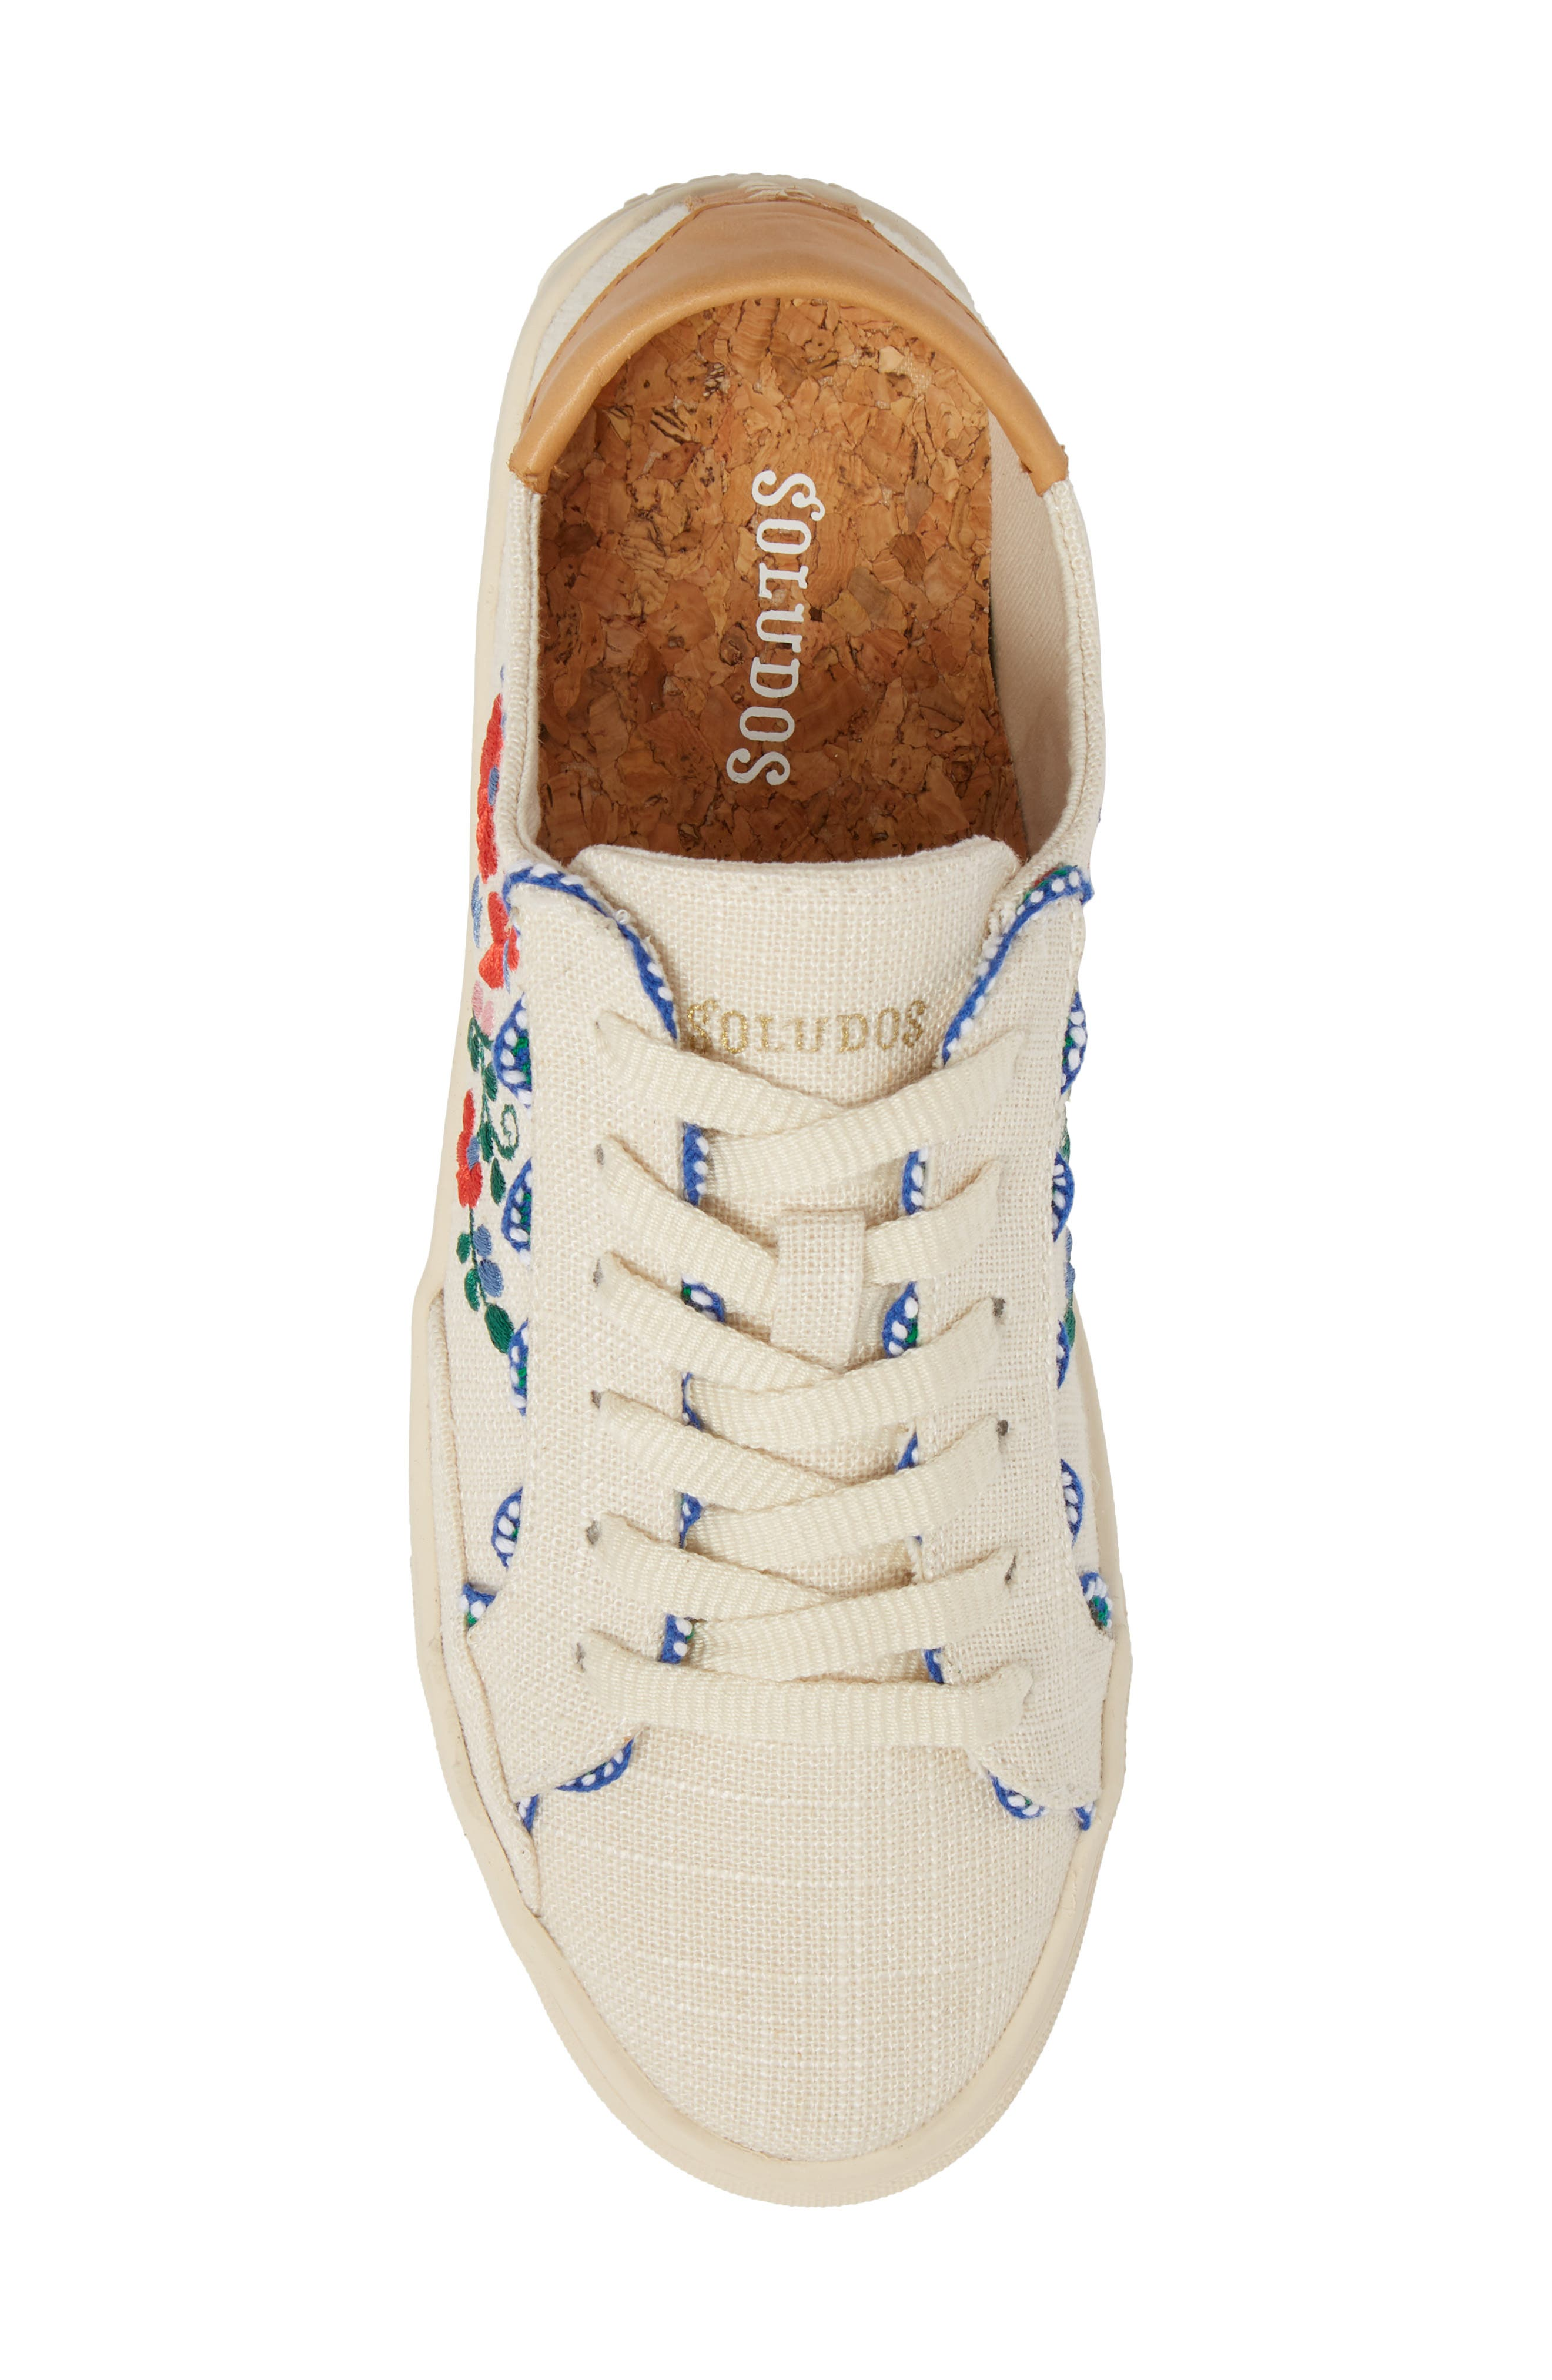 Ibiza Embroidered Sneaker,                             Alternate thumbnail 5, color,                             680